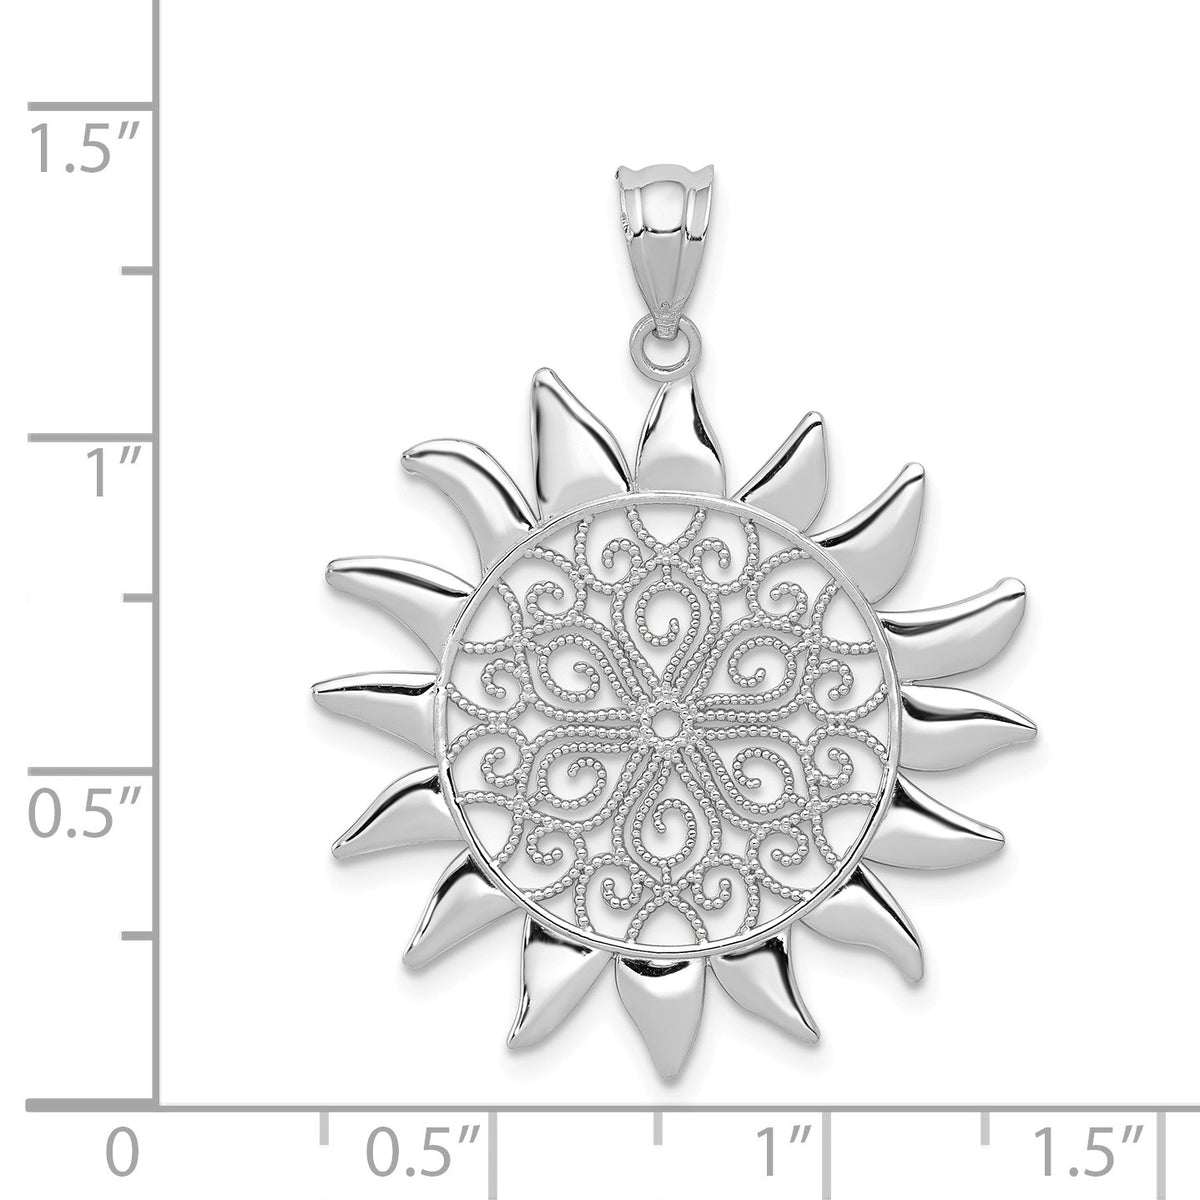 Alternate view of the 14k White Gold Filigree Sun Pendant, 27mm by The Black Bow Jewelry Co.